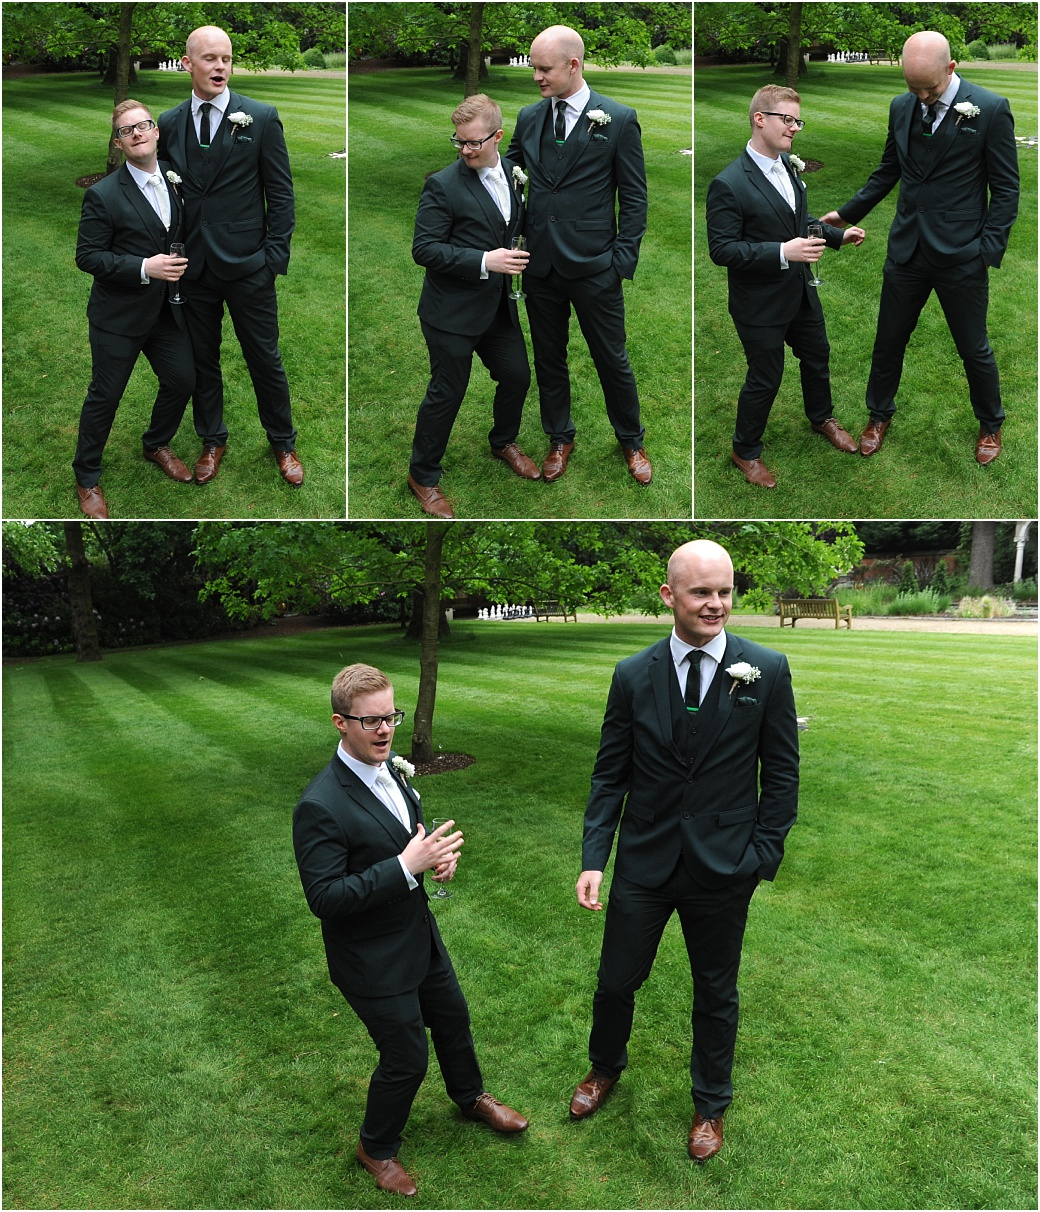 Groom and Best man do a strange and very funny Alan Partridge like dance routine on the lawn at Warren House a hidden gem of a wedding venue in Kingston Surrey